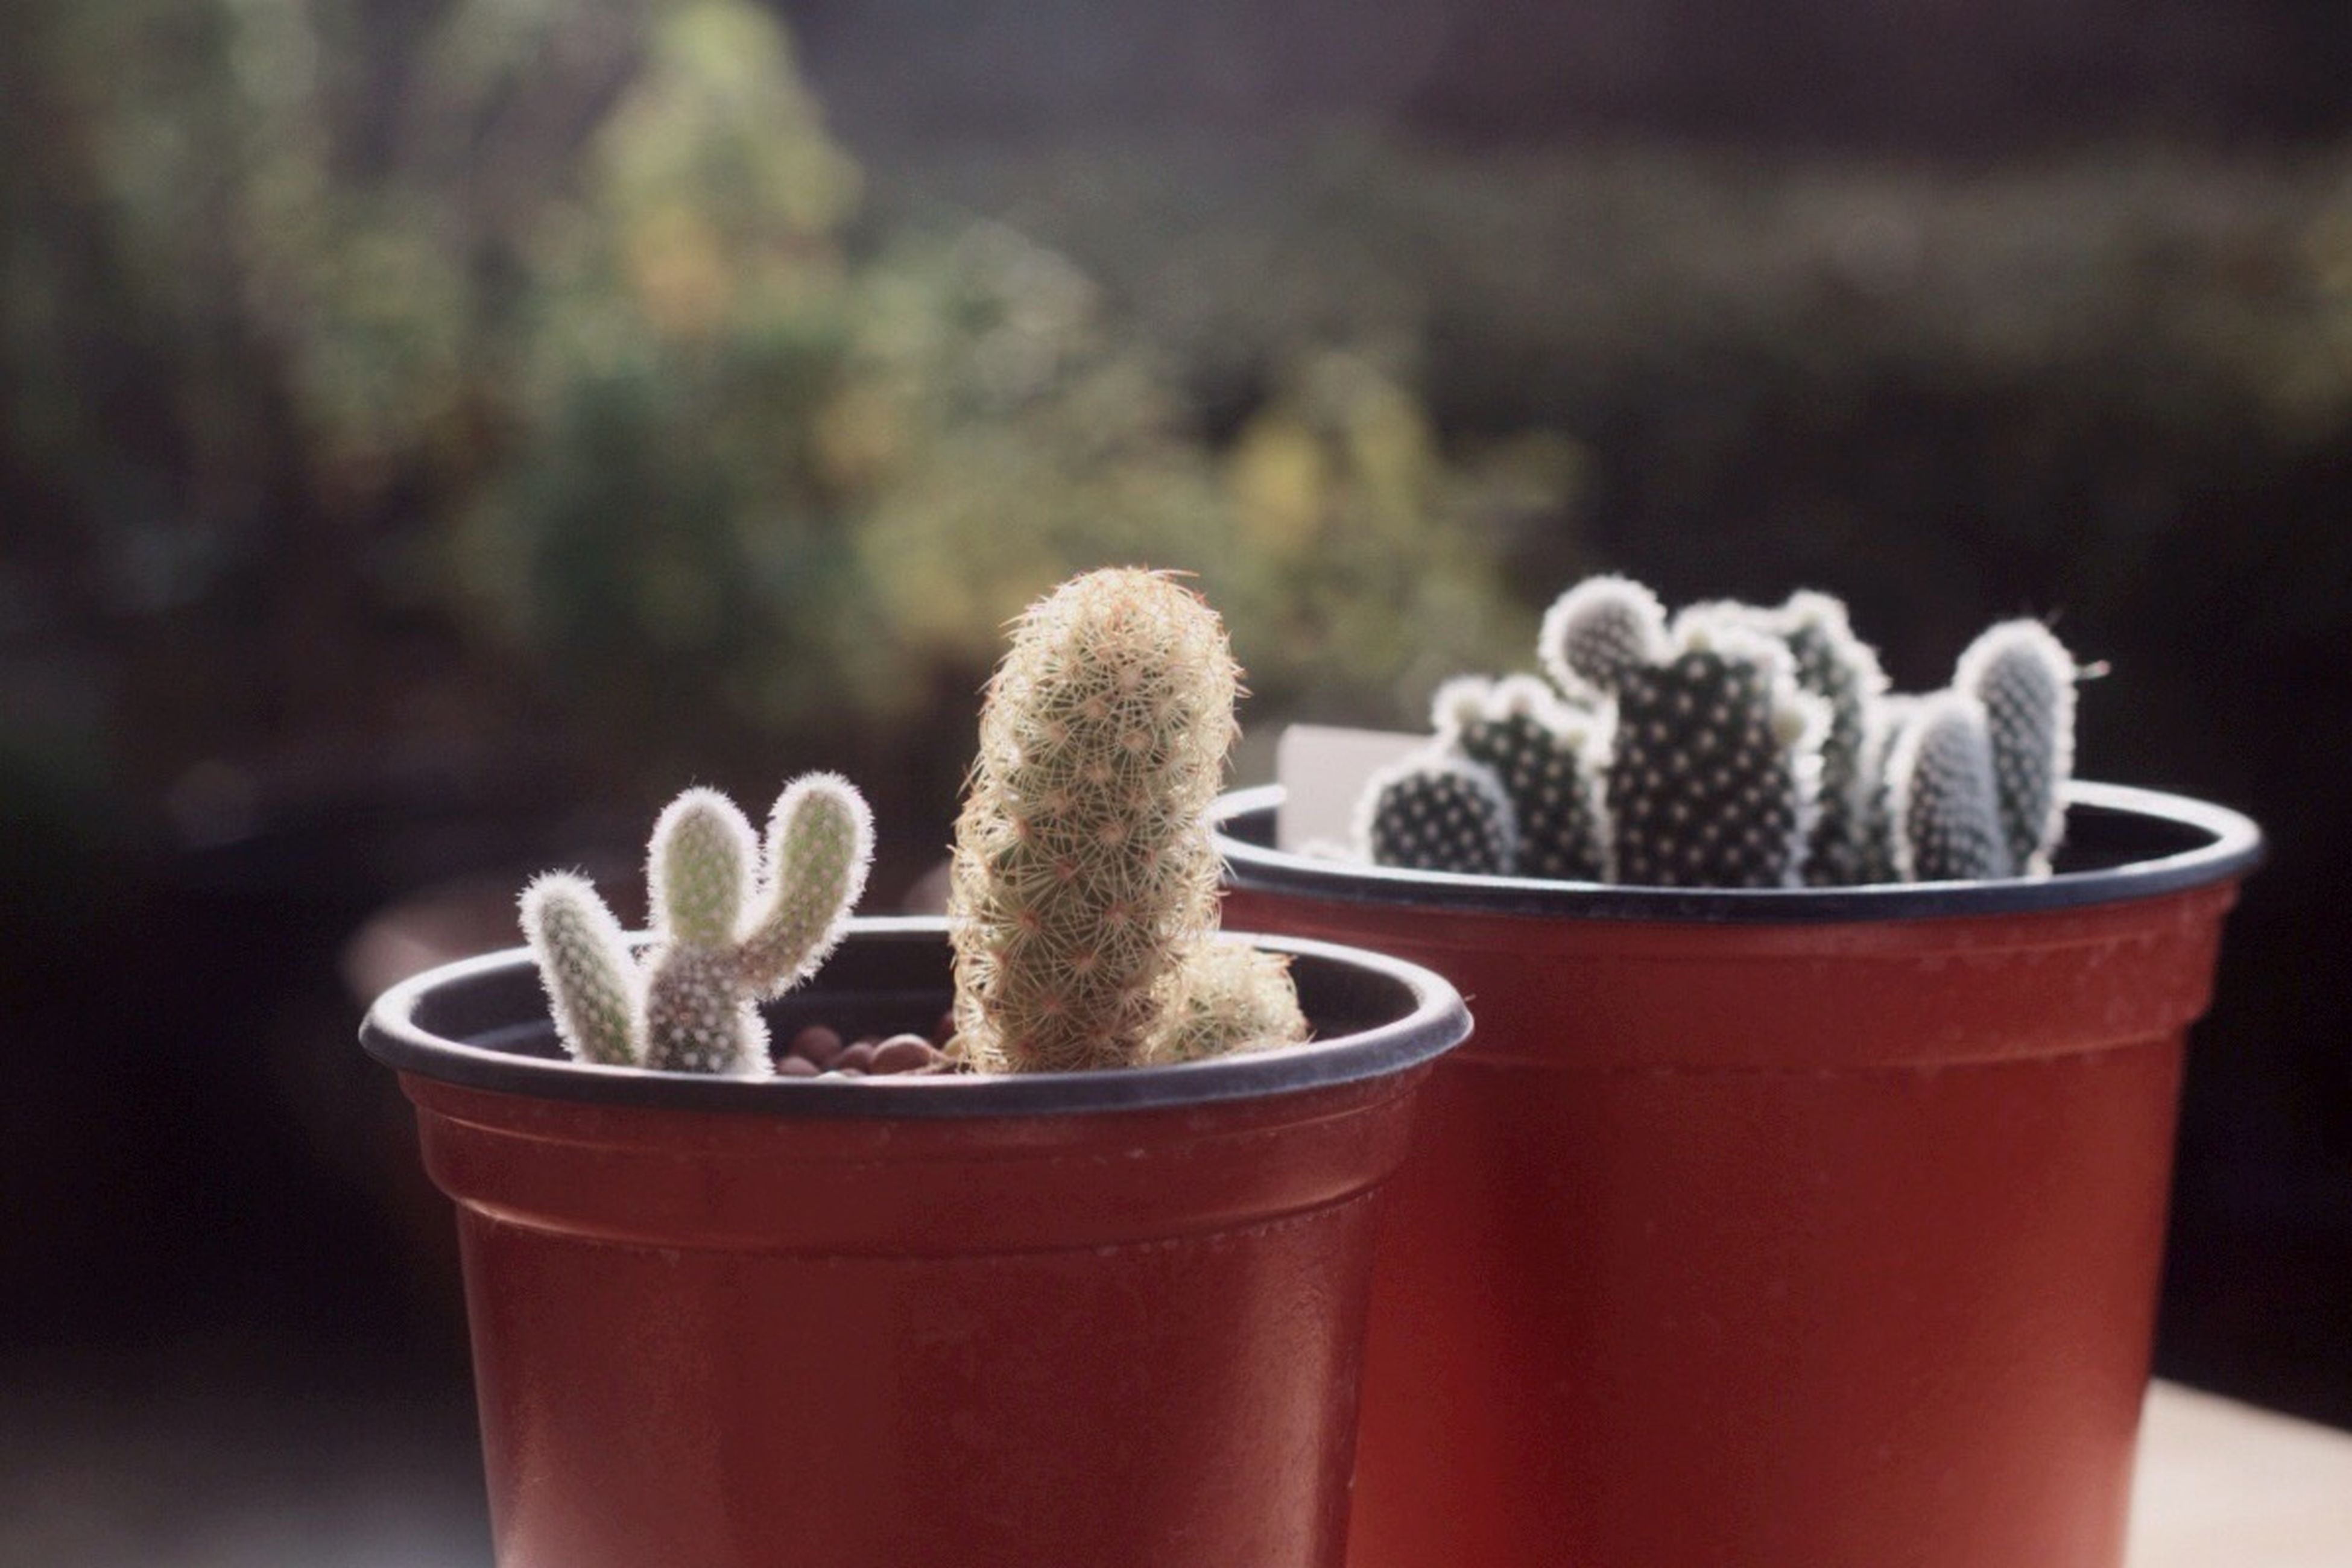 close-up, freshness, focus on foreground, potted plant, flower, food and drink, plant, growth, still life, indoors, table, cactus, selective focus, no people, healthy eating, day, container, fragility, nature, sunlight